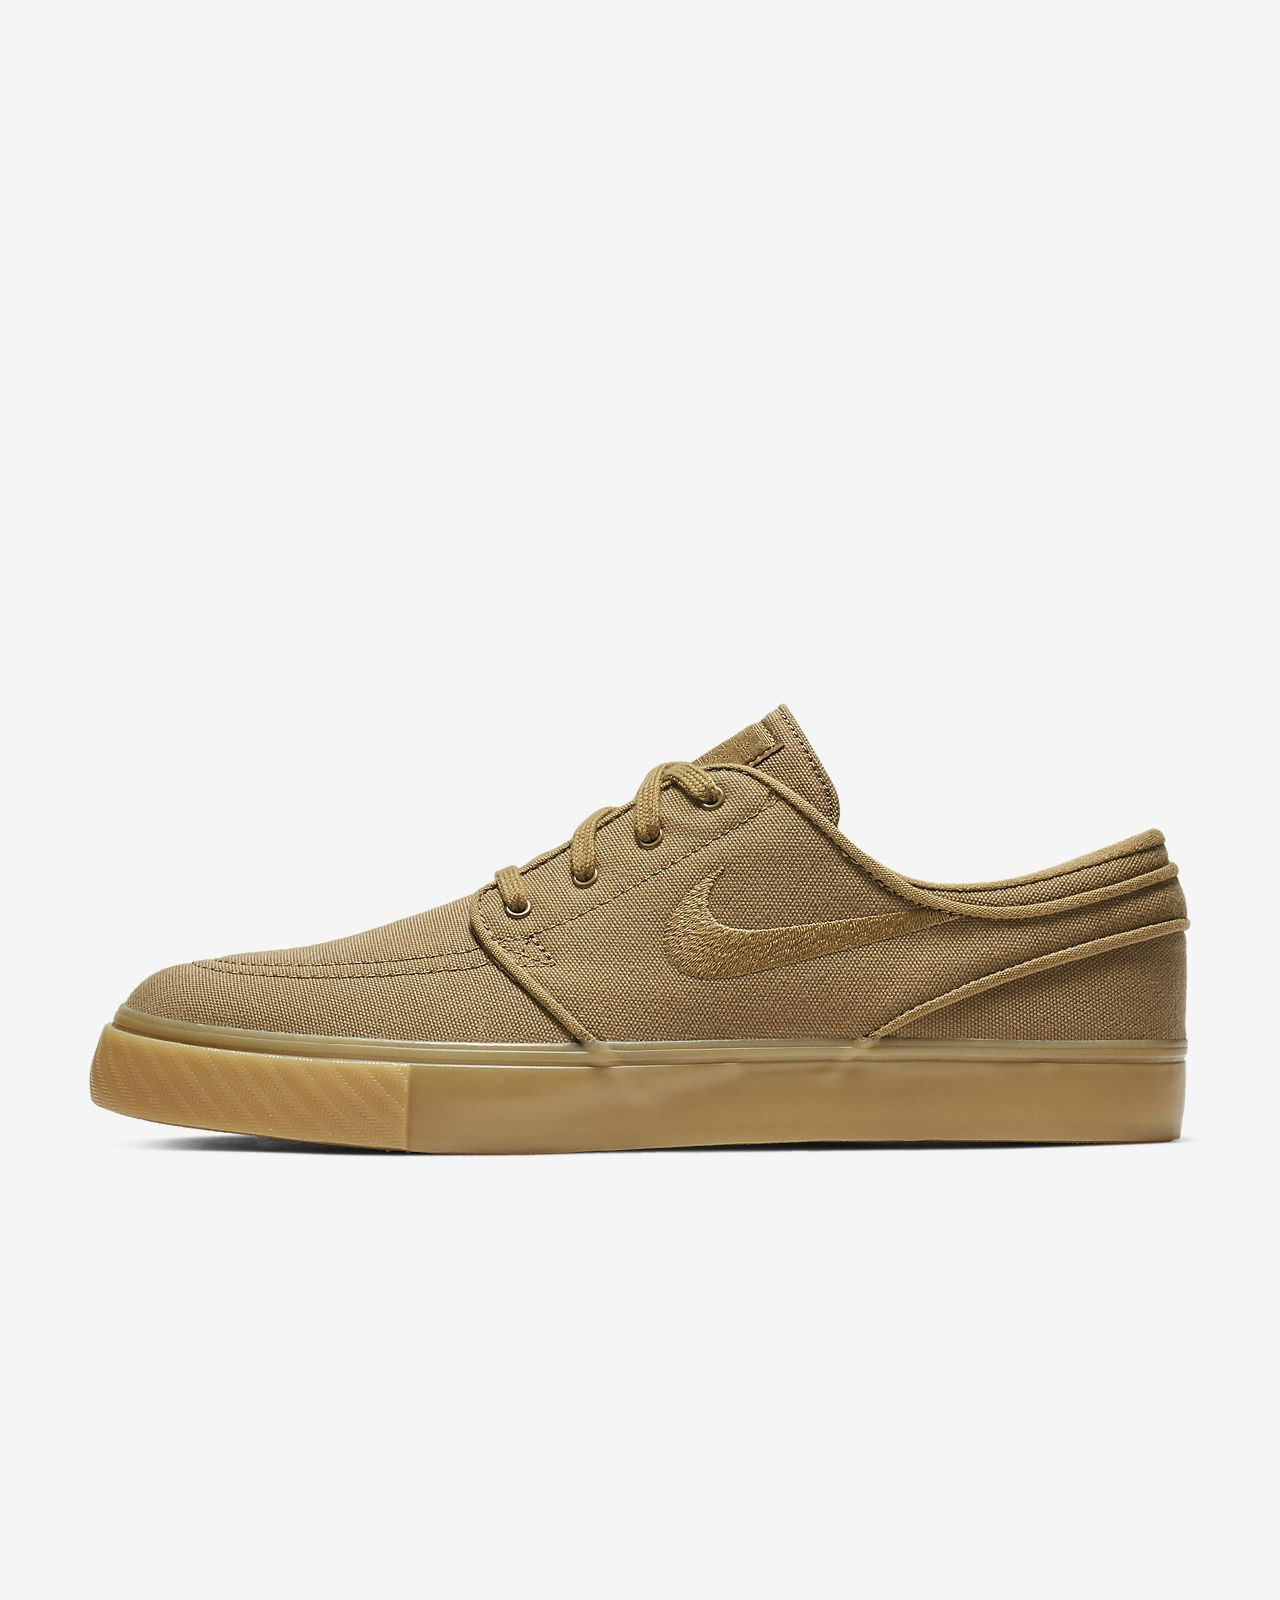 Details about Nike 615957 Mens SB Zoom Stefan Janoski Canvas Low Top Skateboarding Skate Shoes